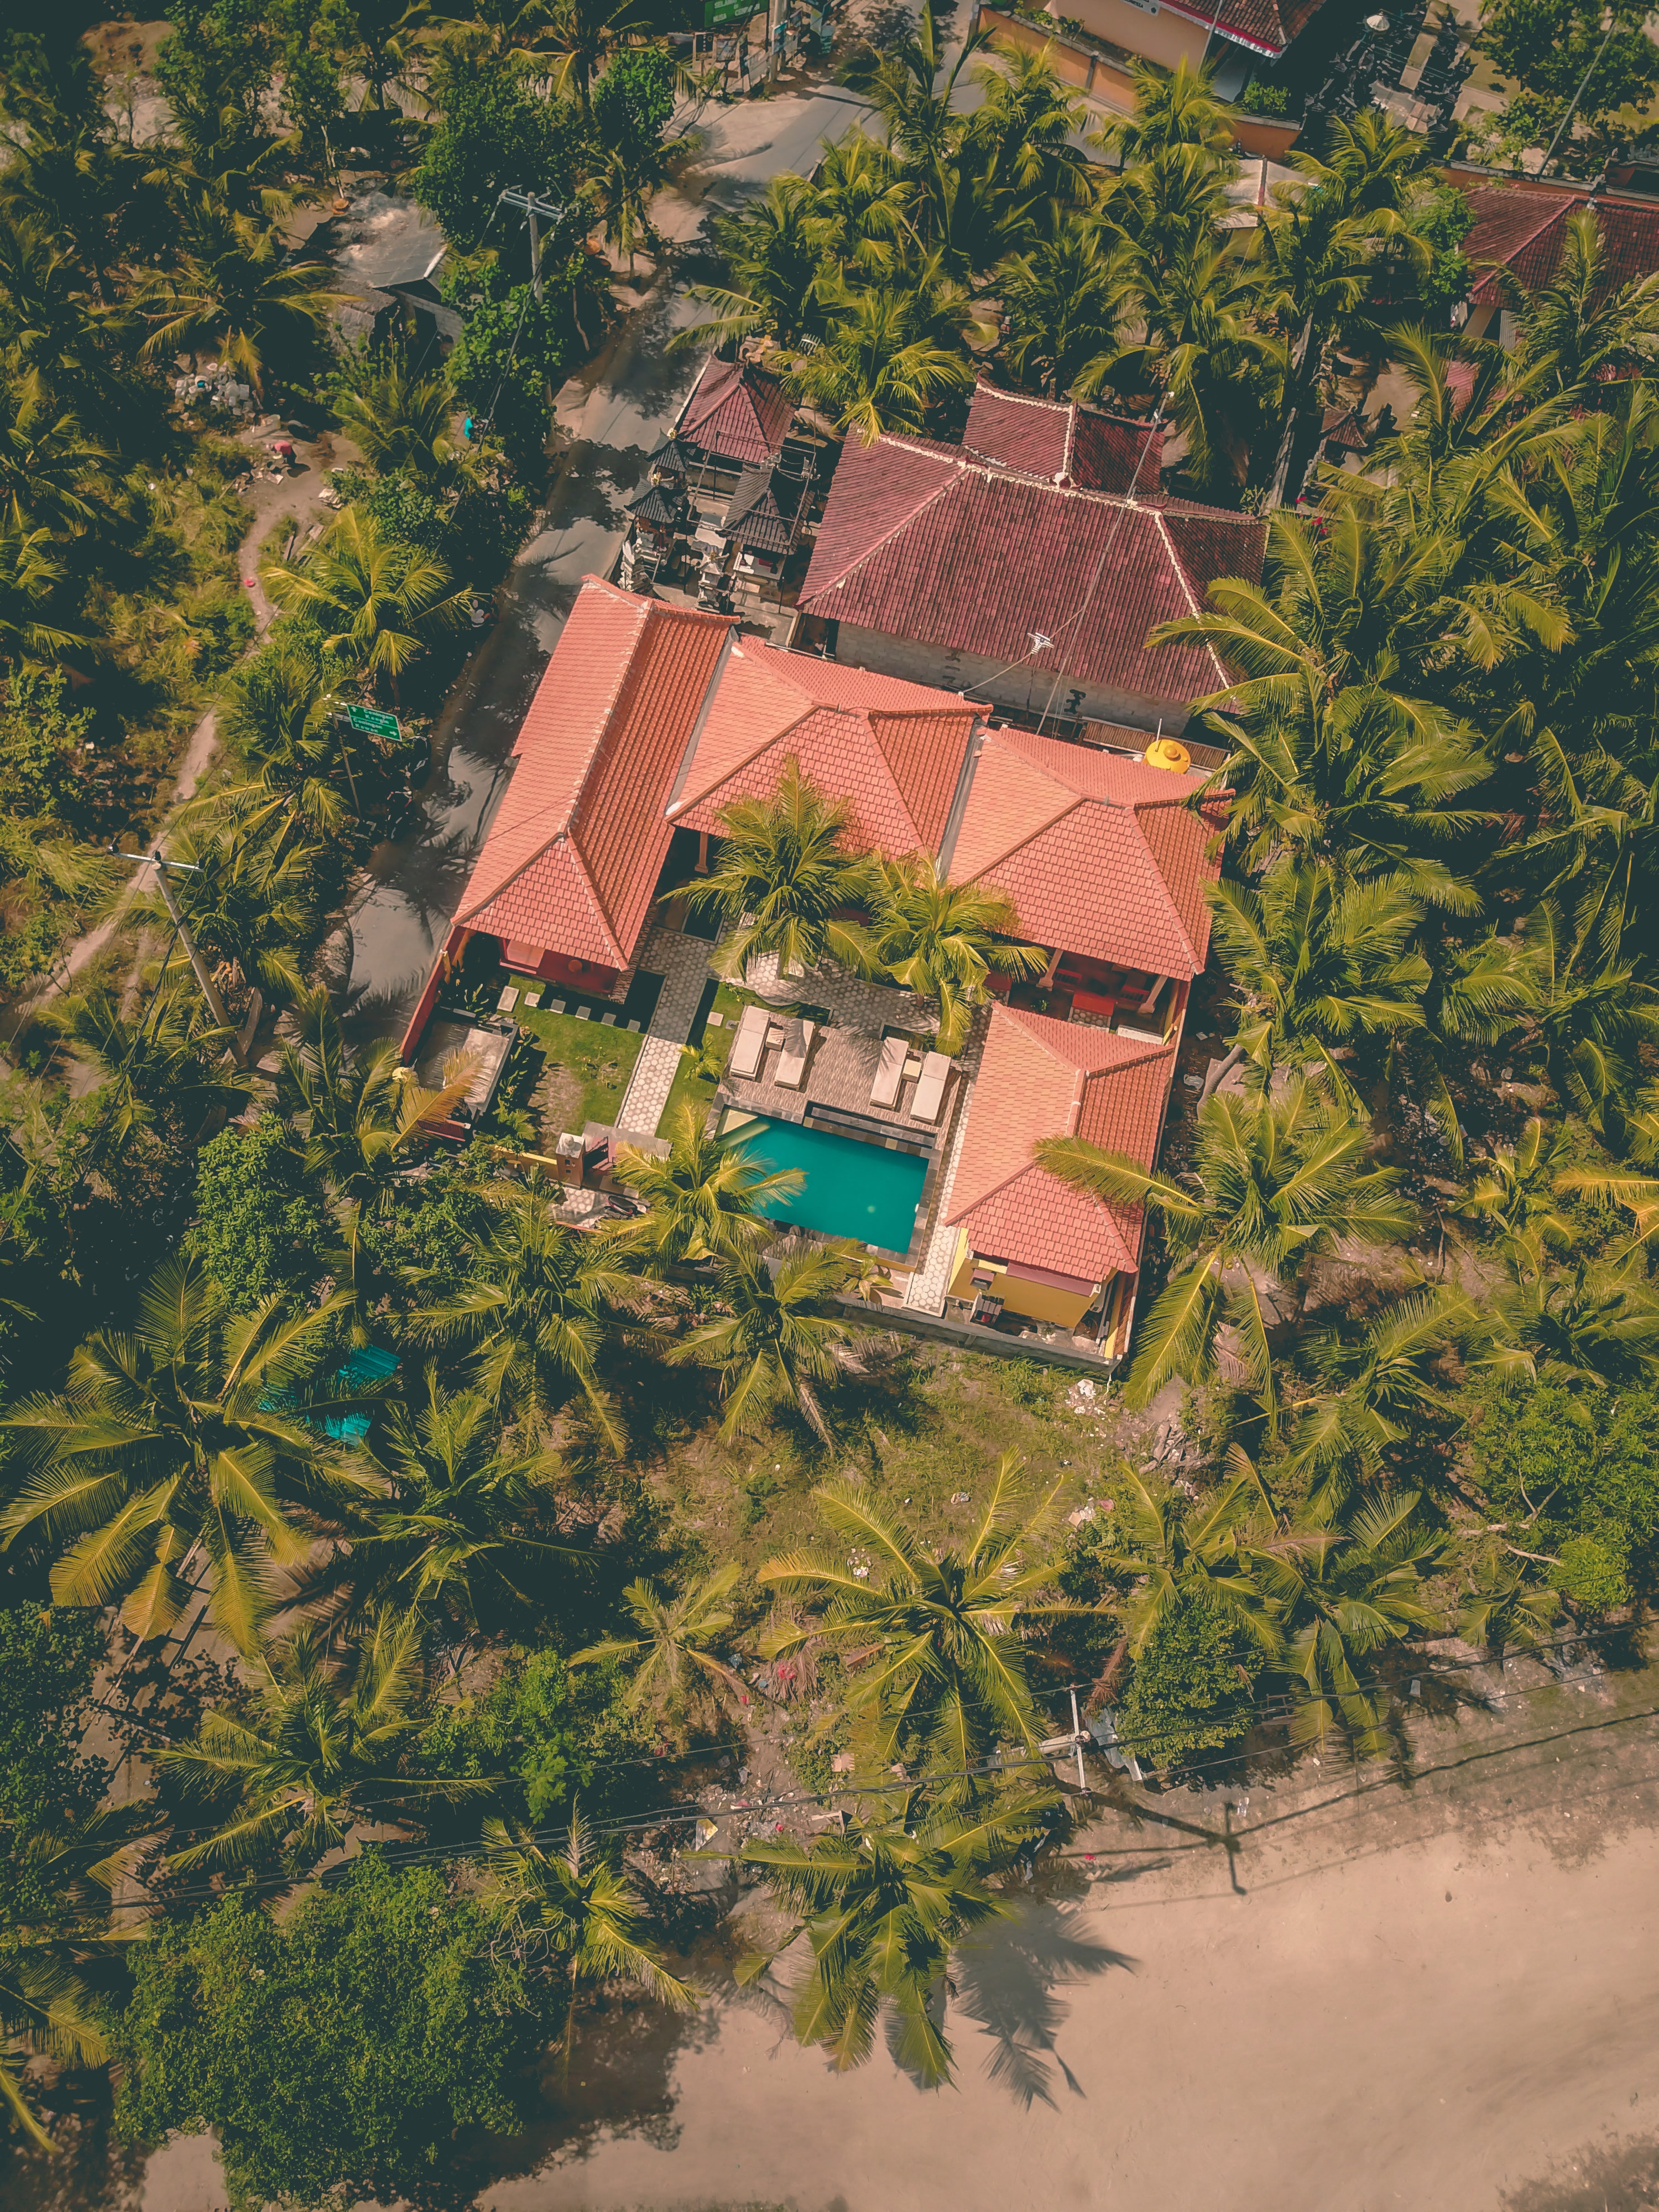 aerial photo of concrete house with swimming pool